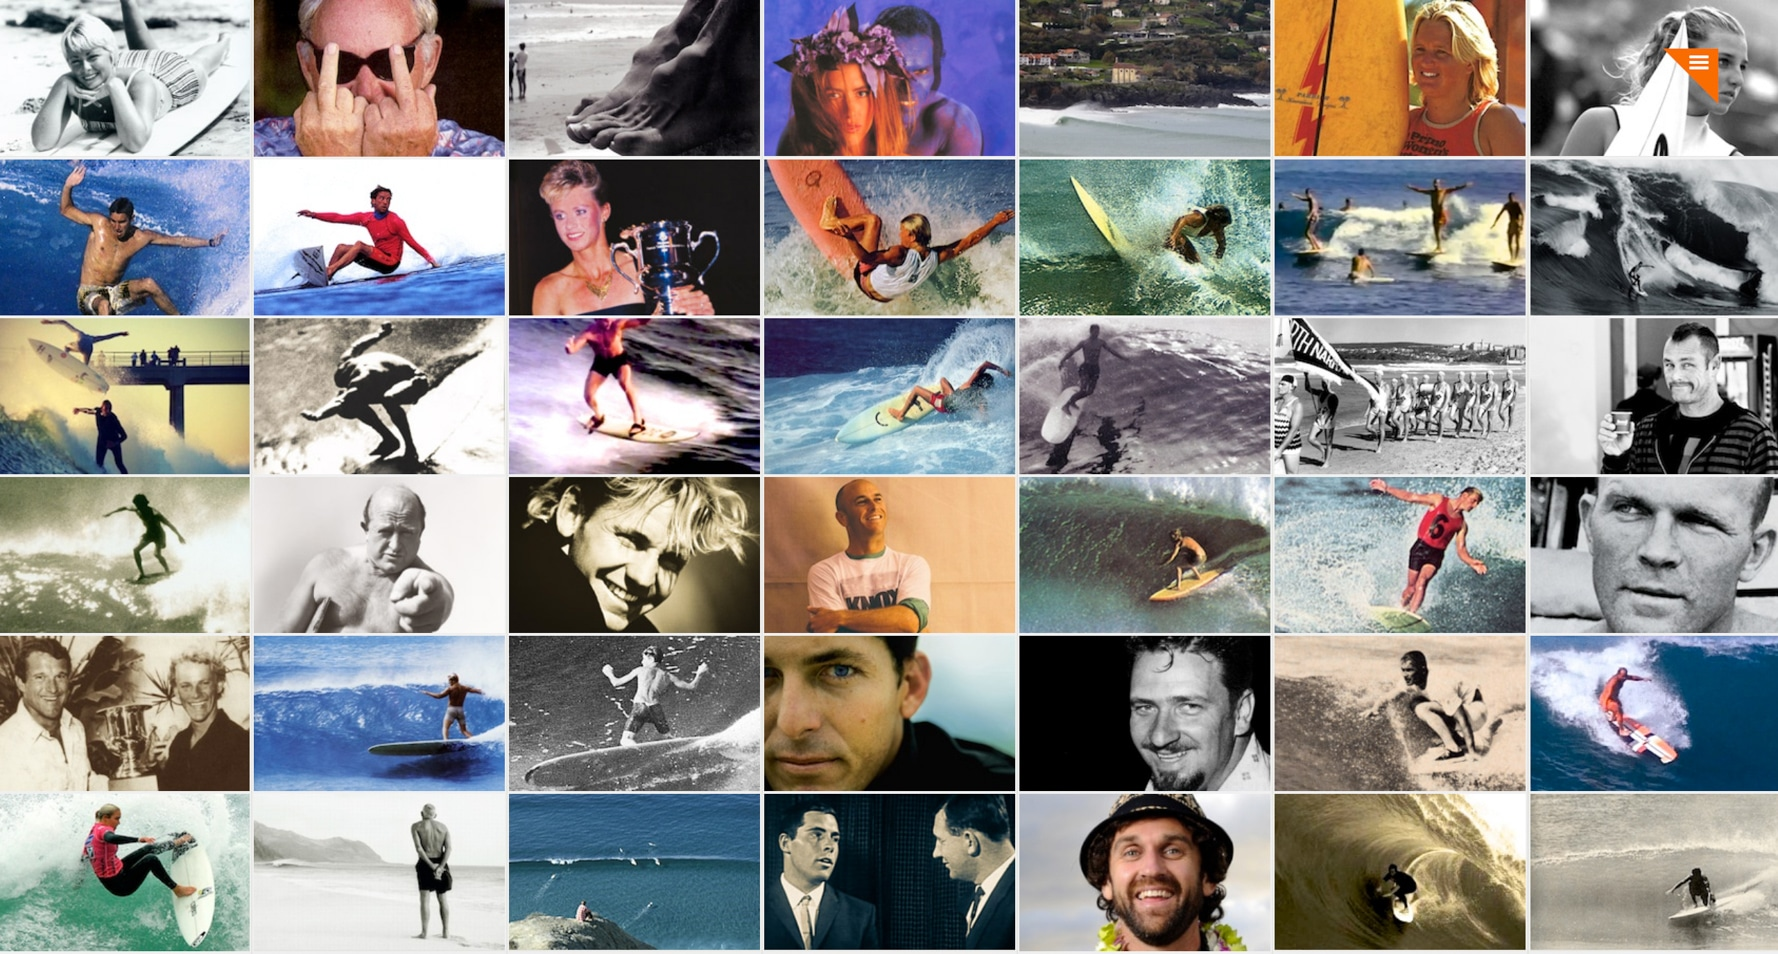 Encyclopedia of Surfing by Matt Warshaw of Surfing